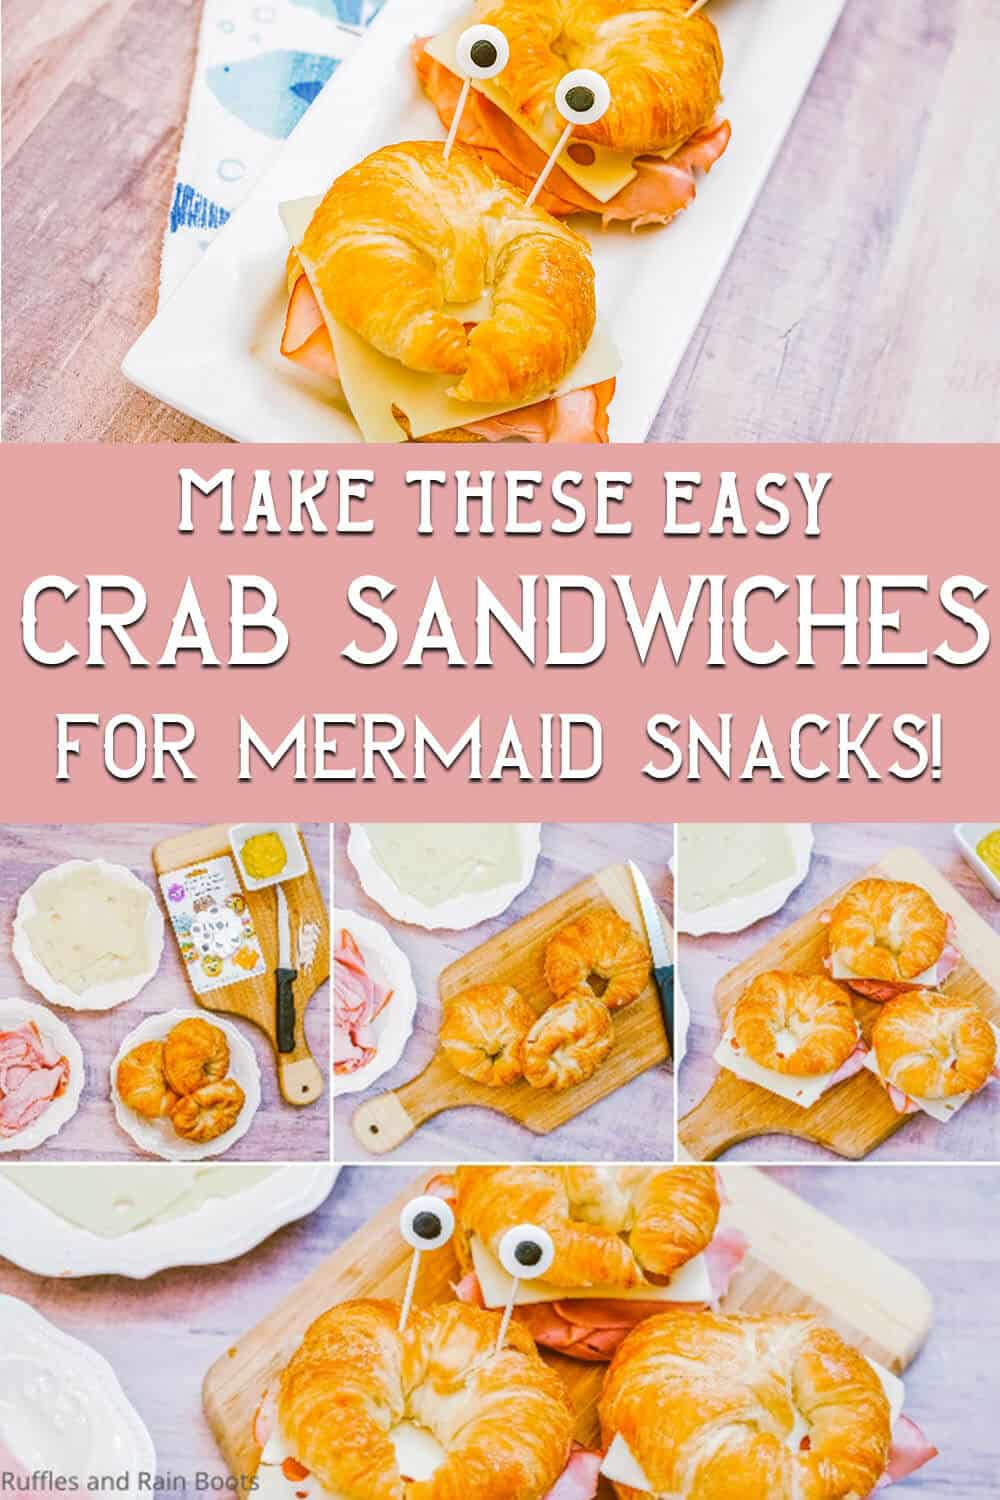 photo collage of mermaid food sandwich recipe with text which reads make these easy crab sandwiches for mermaid snacks